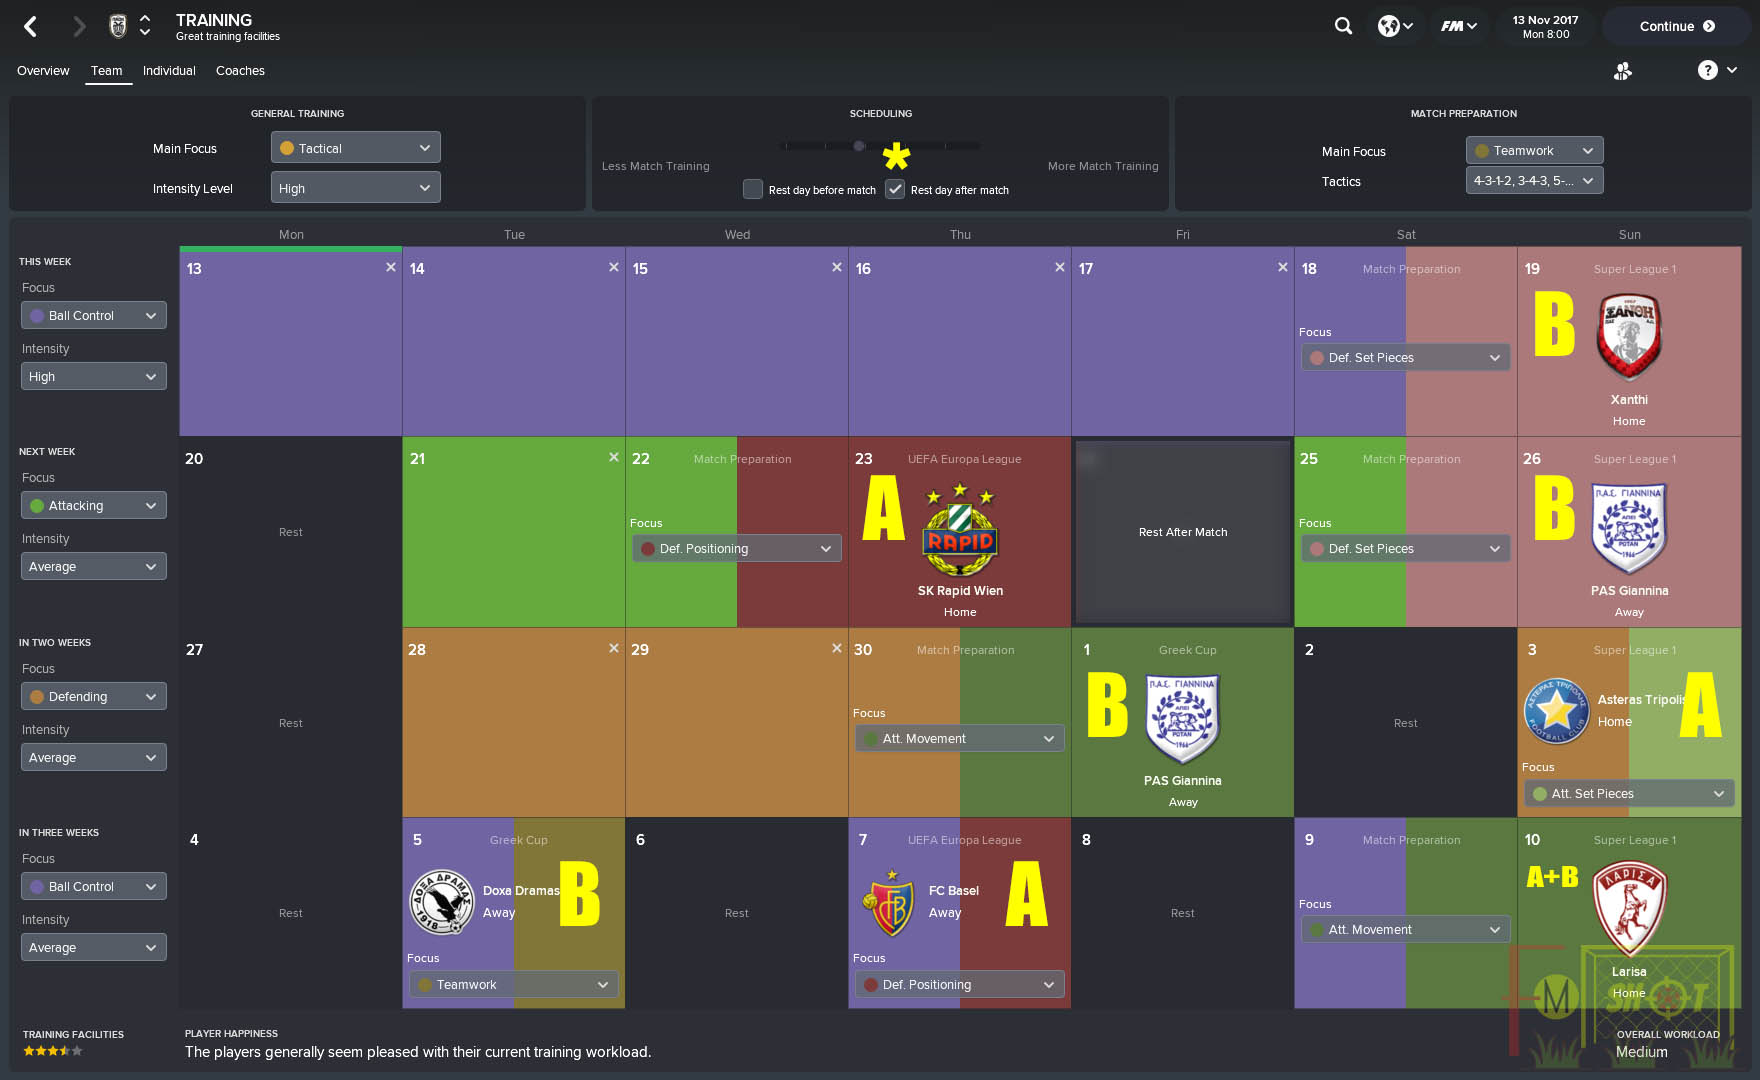 Training Schedule and Matches